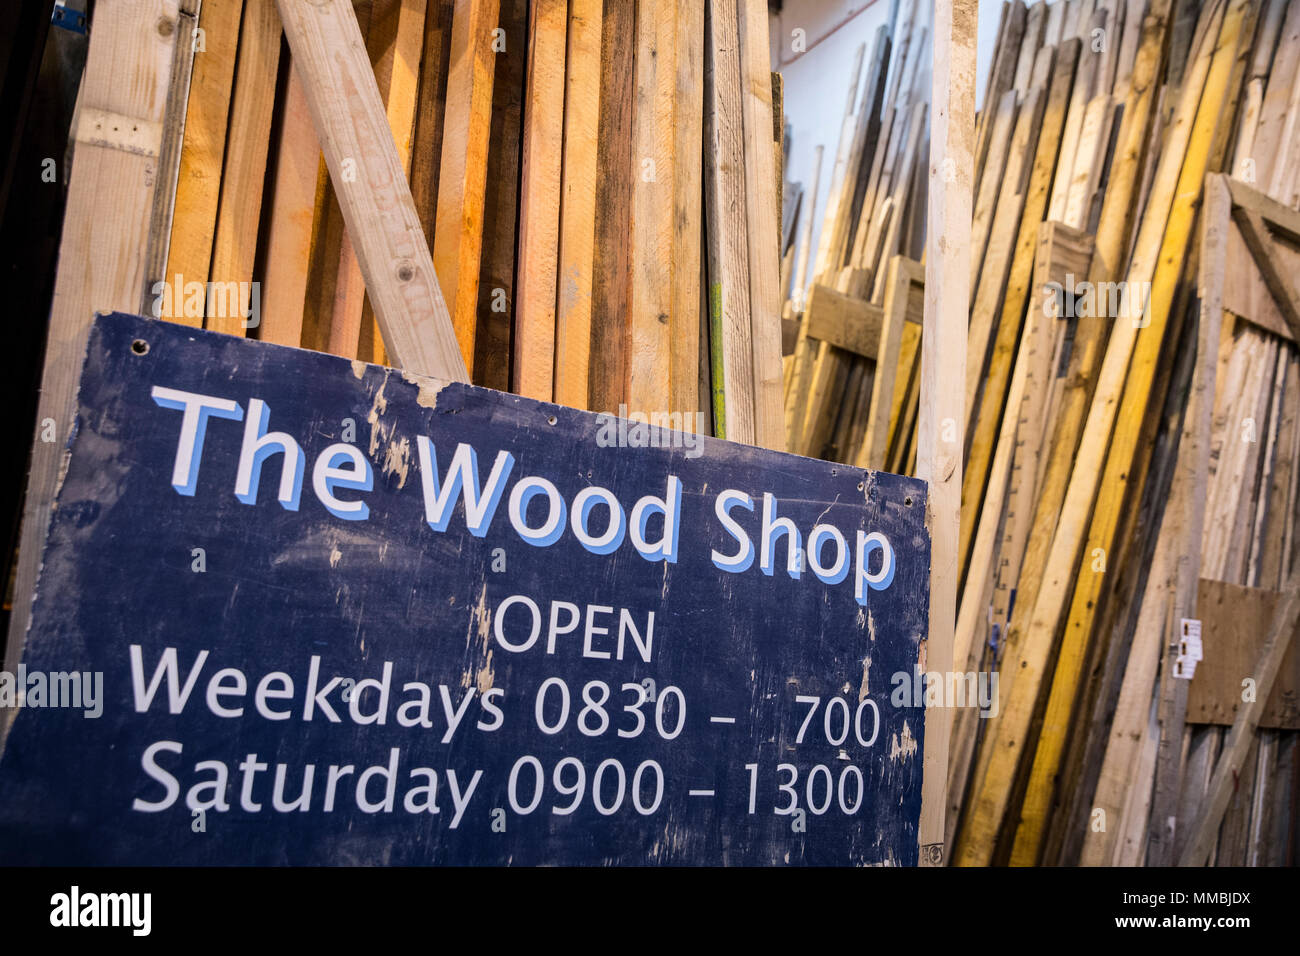 Close up of old blue Open sign for Wood Shop leaning against a stack of wooden planks. - Stock Image